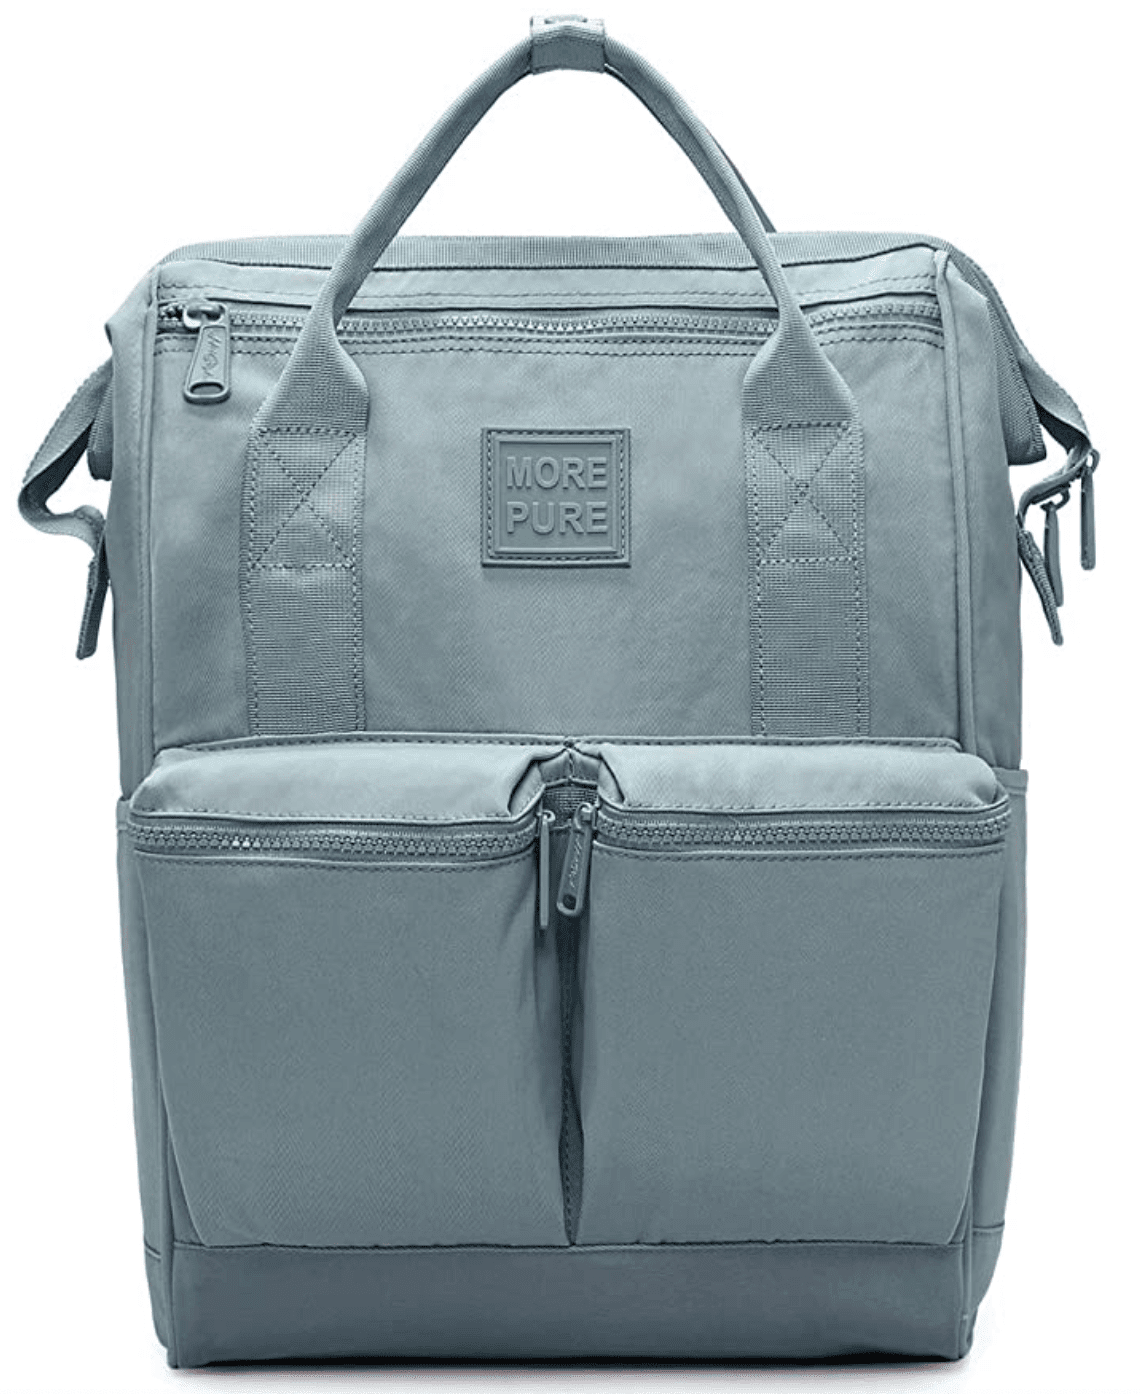 DISA Women's Backpack